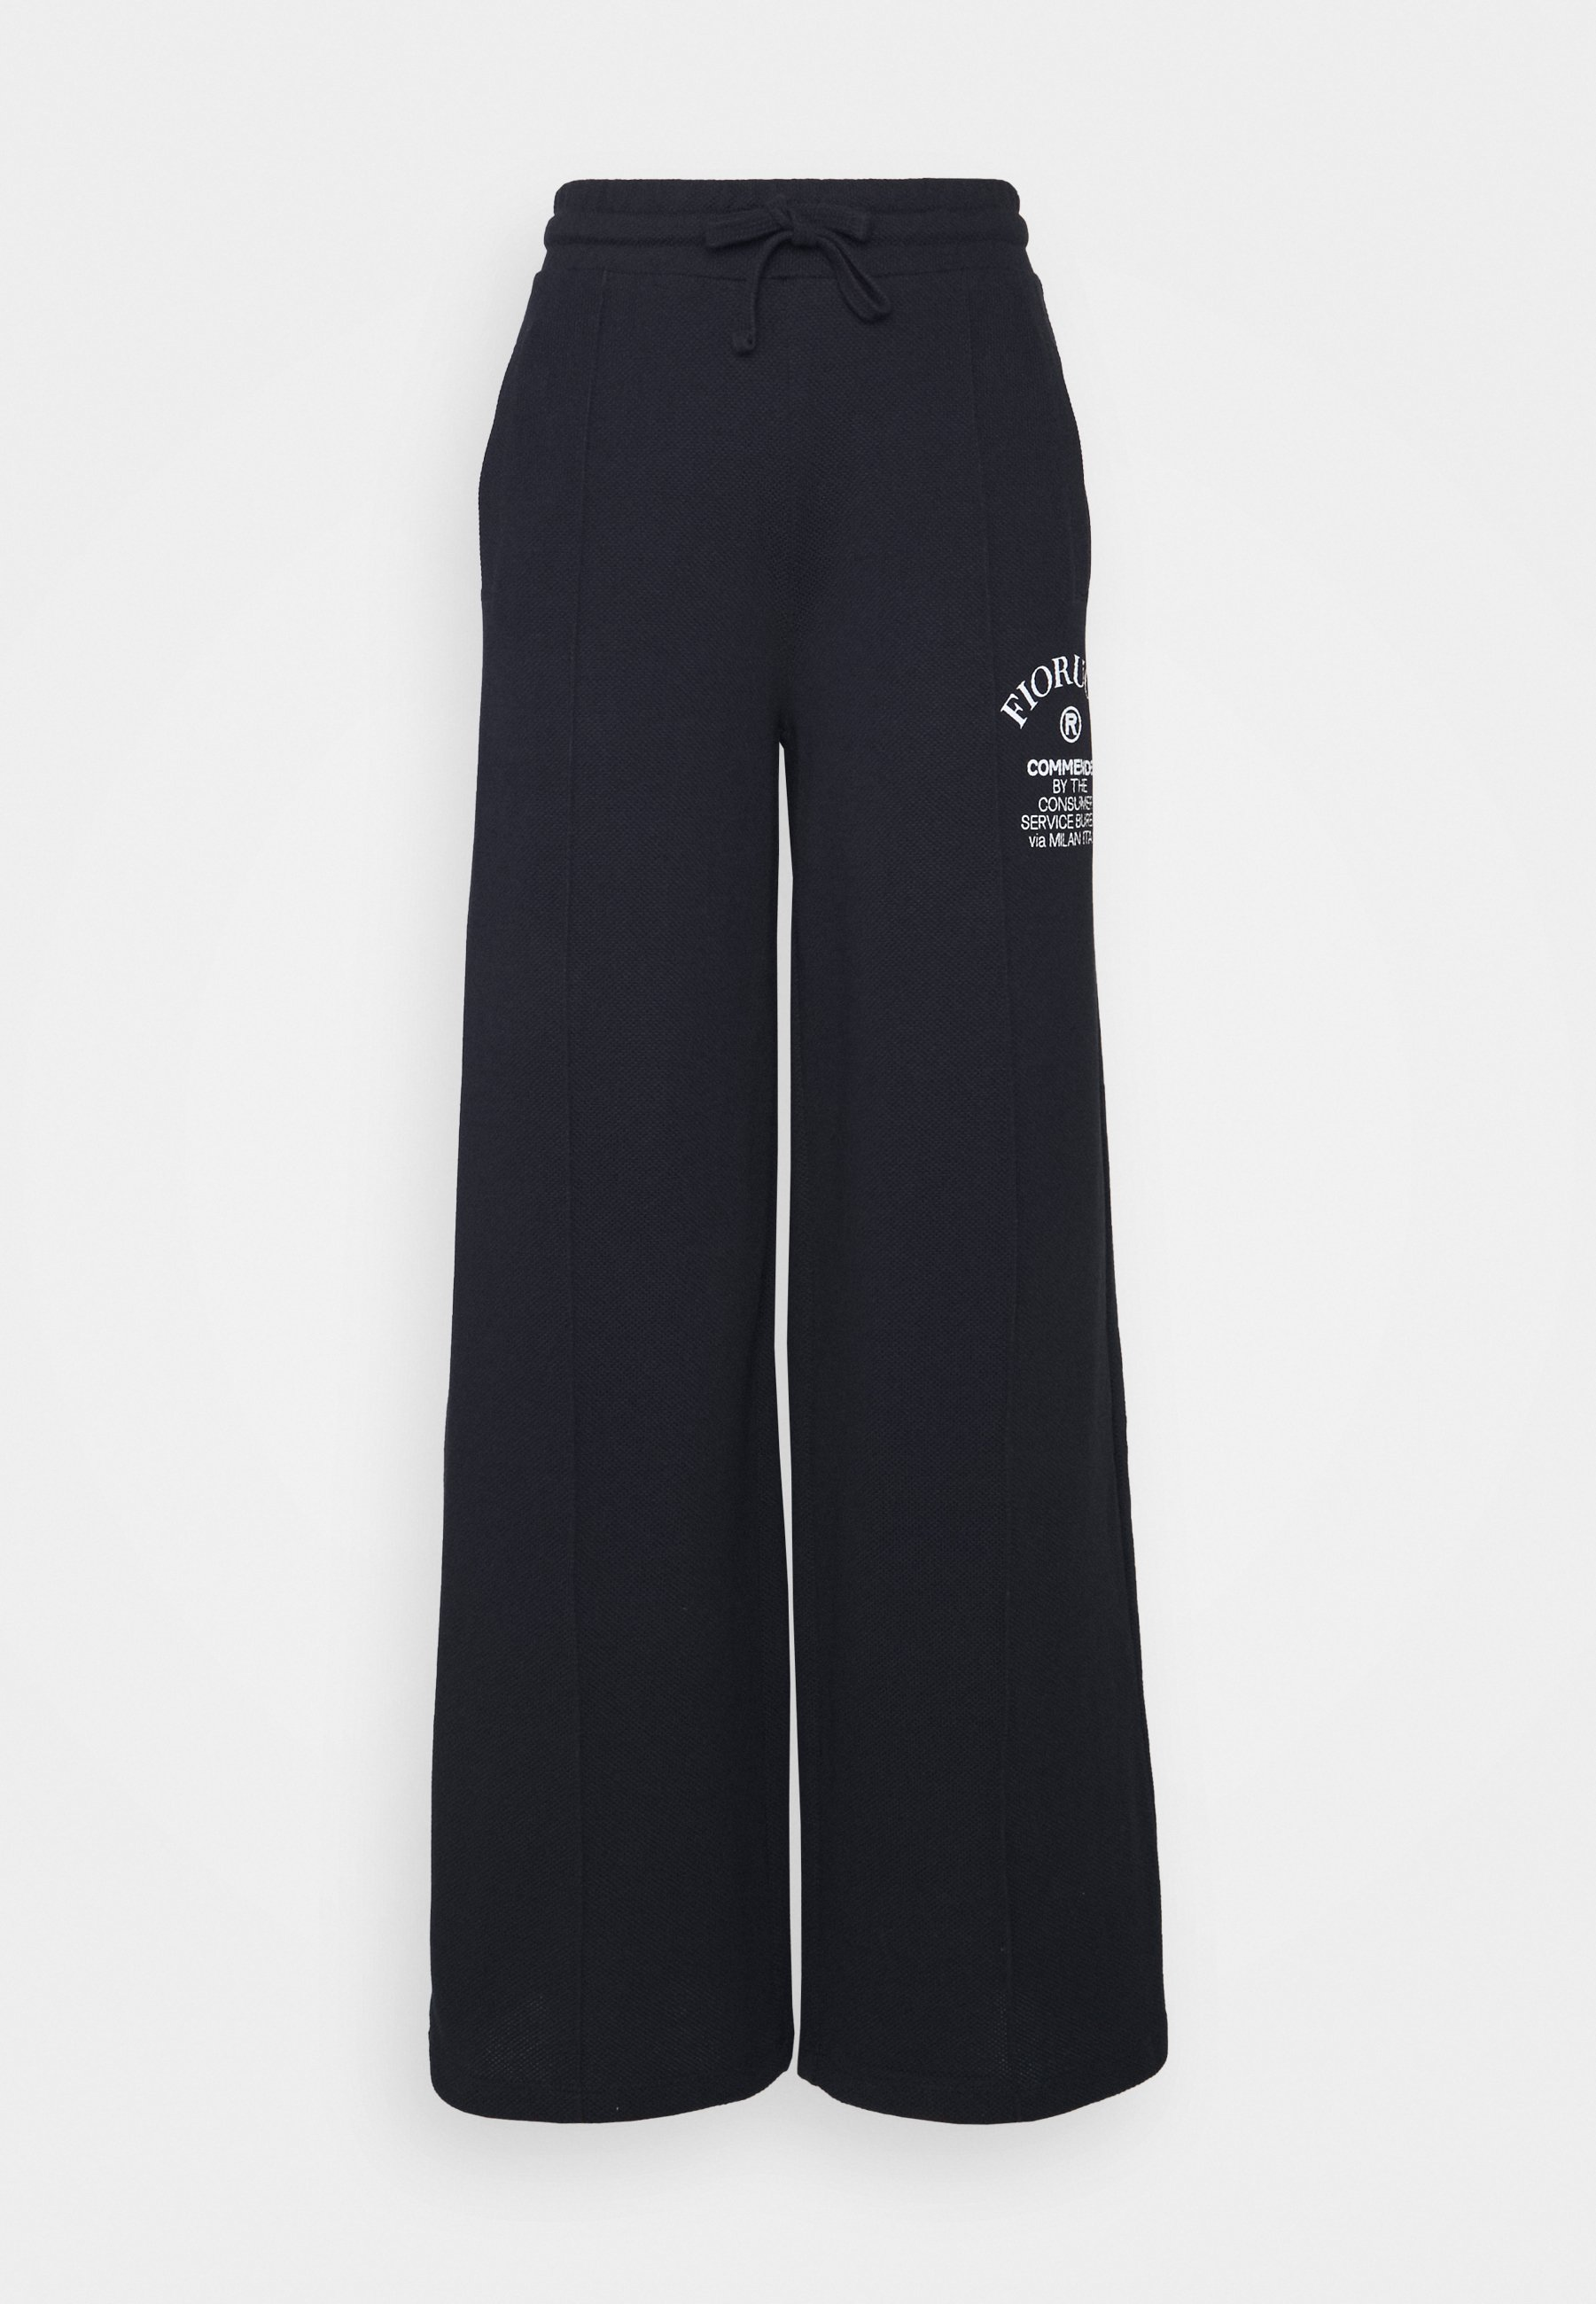 Women COMMENDED WIDE LEGGED TRACKPANTS - Tracksuit bottoms